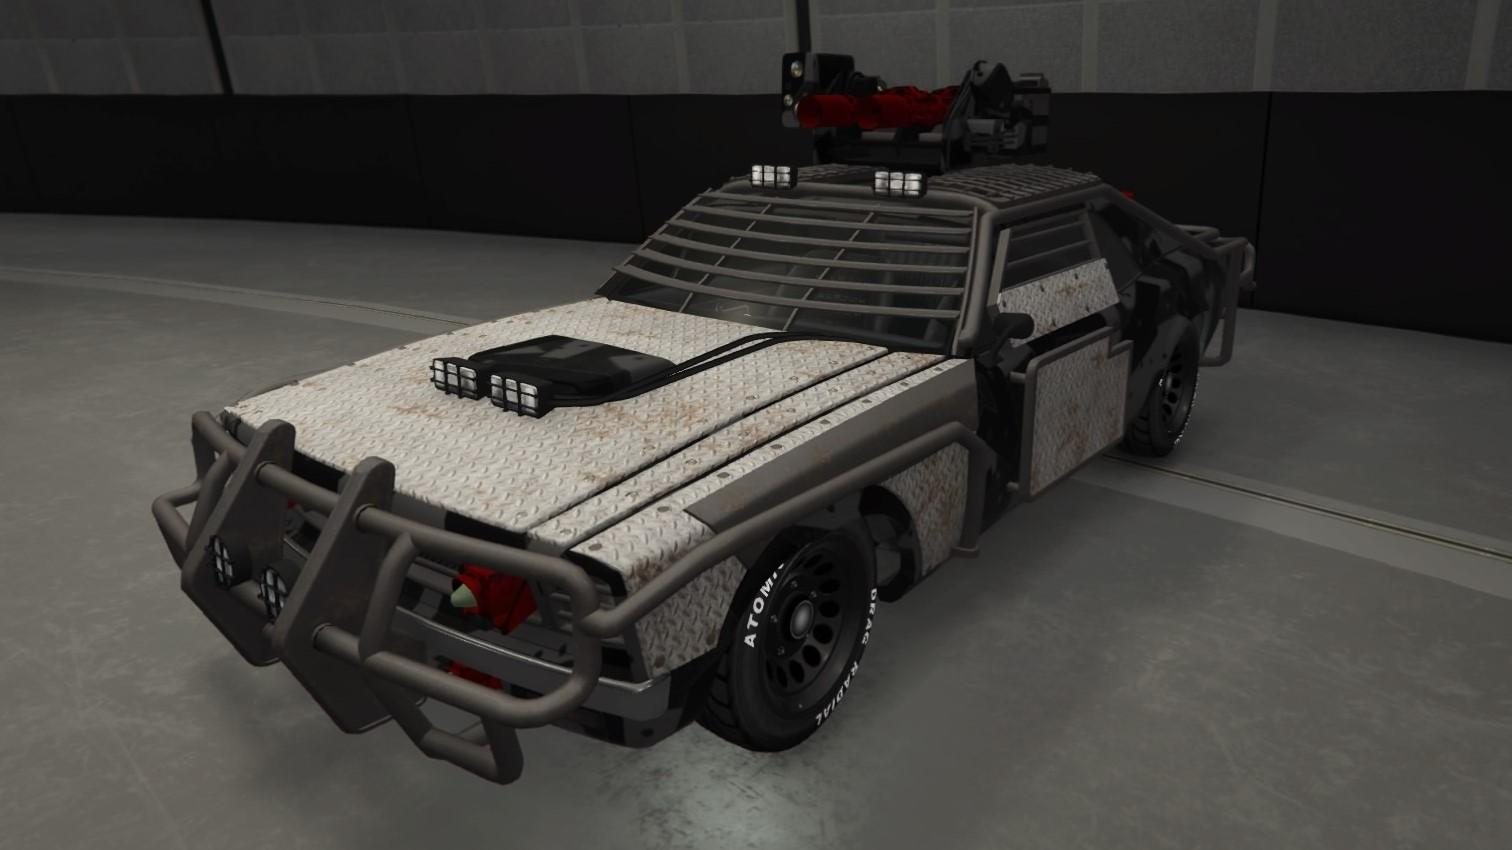 Custom Weaponized Tampa by Gui.DK